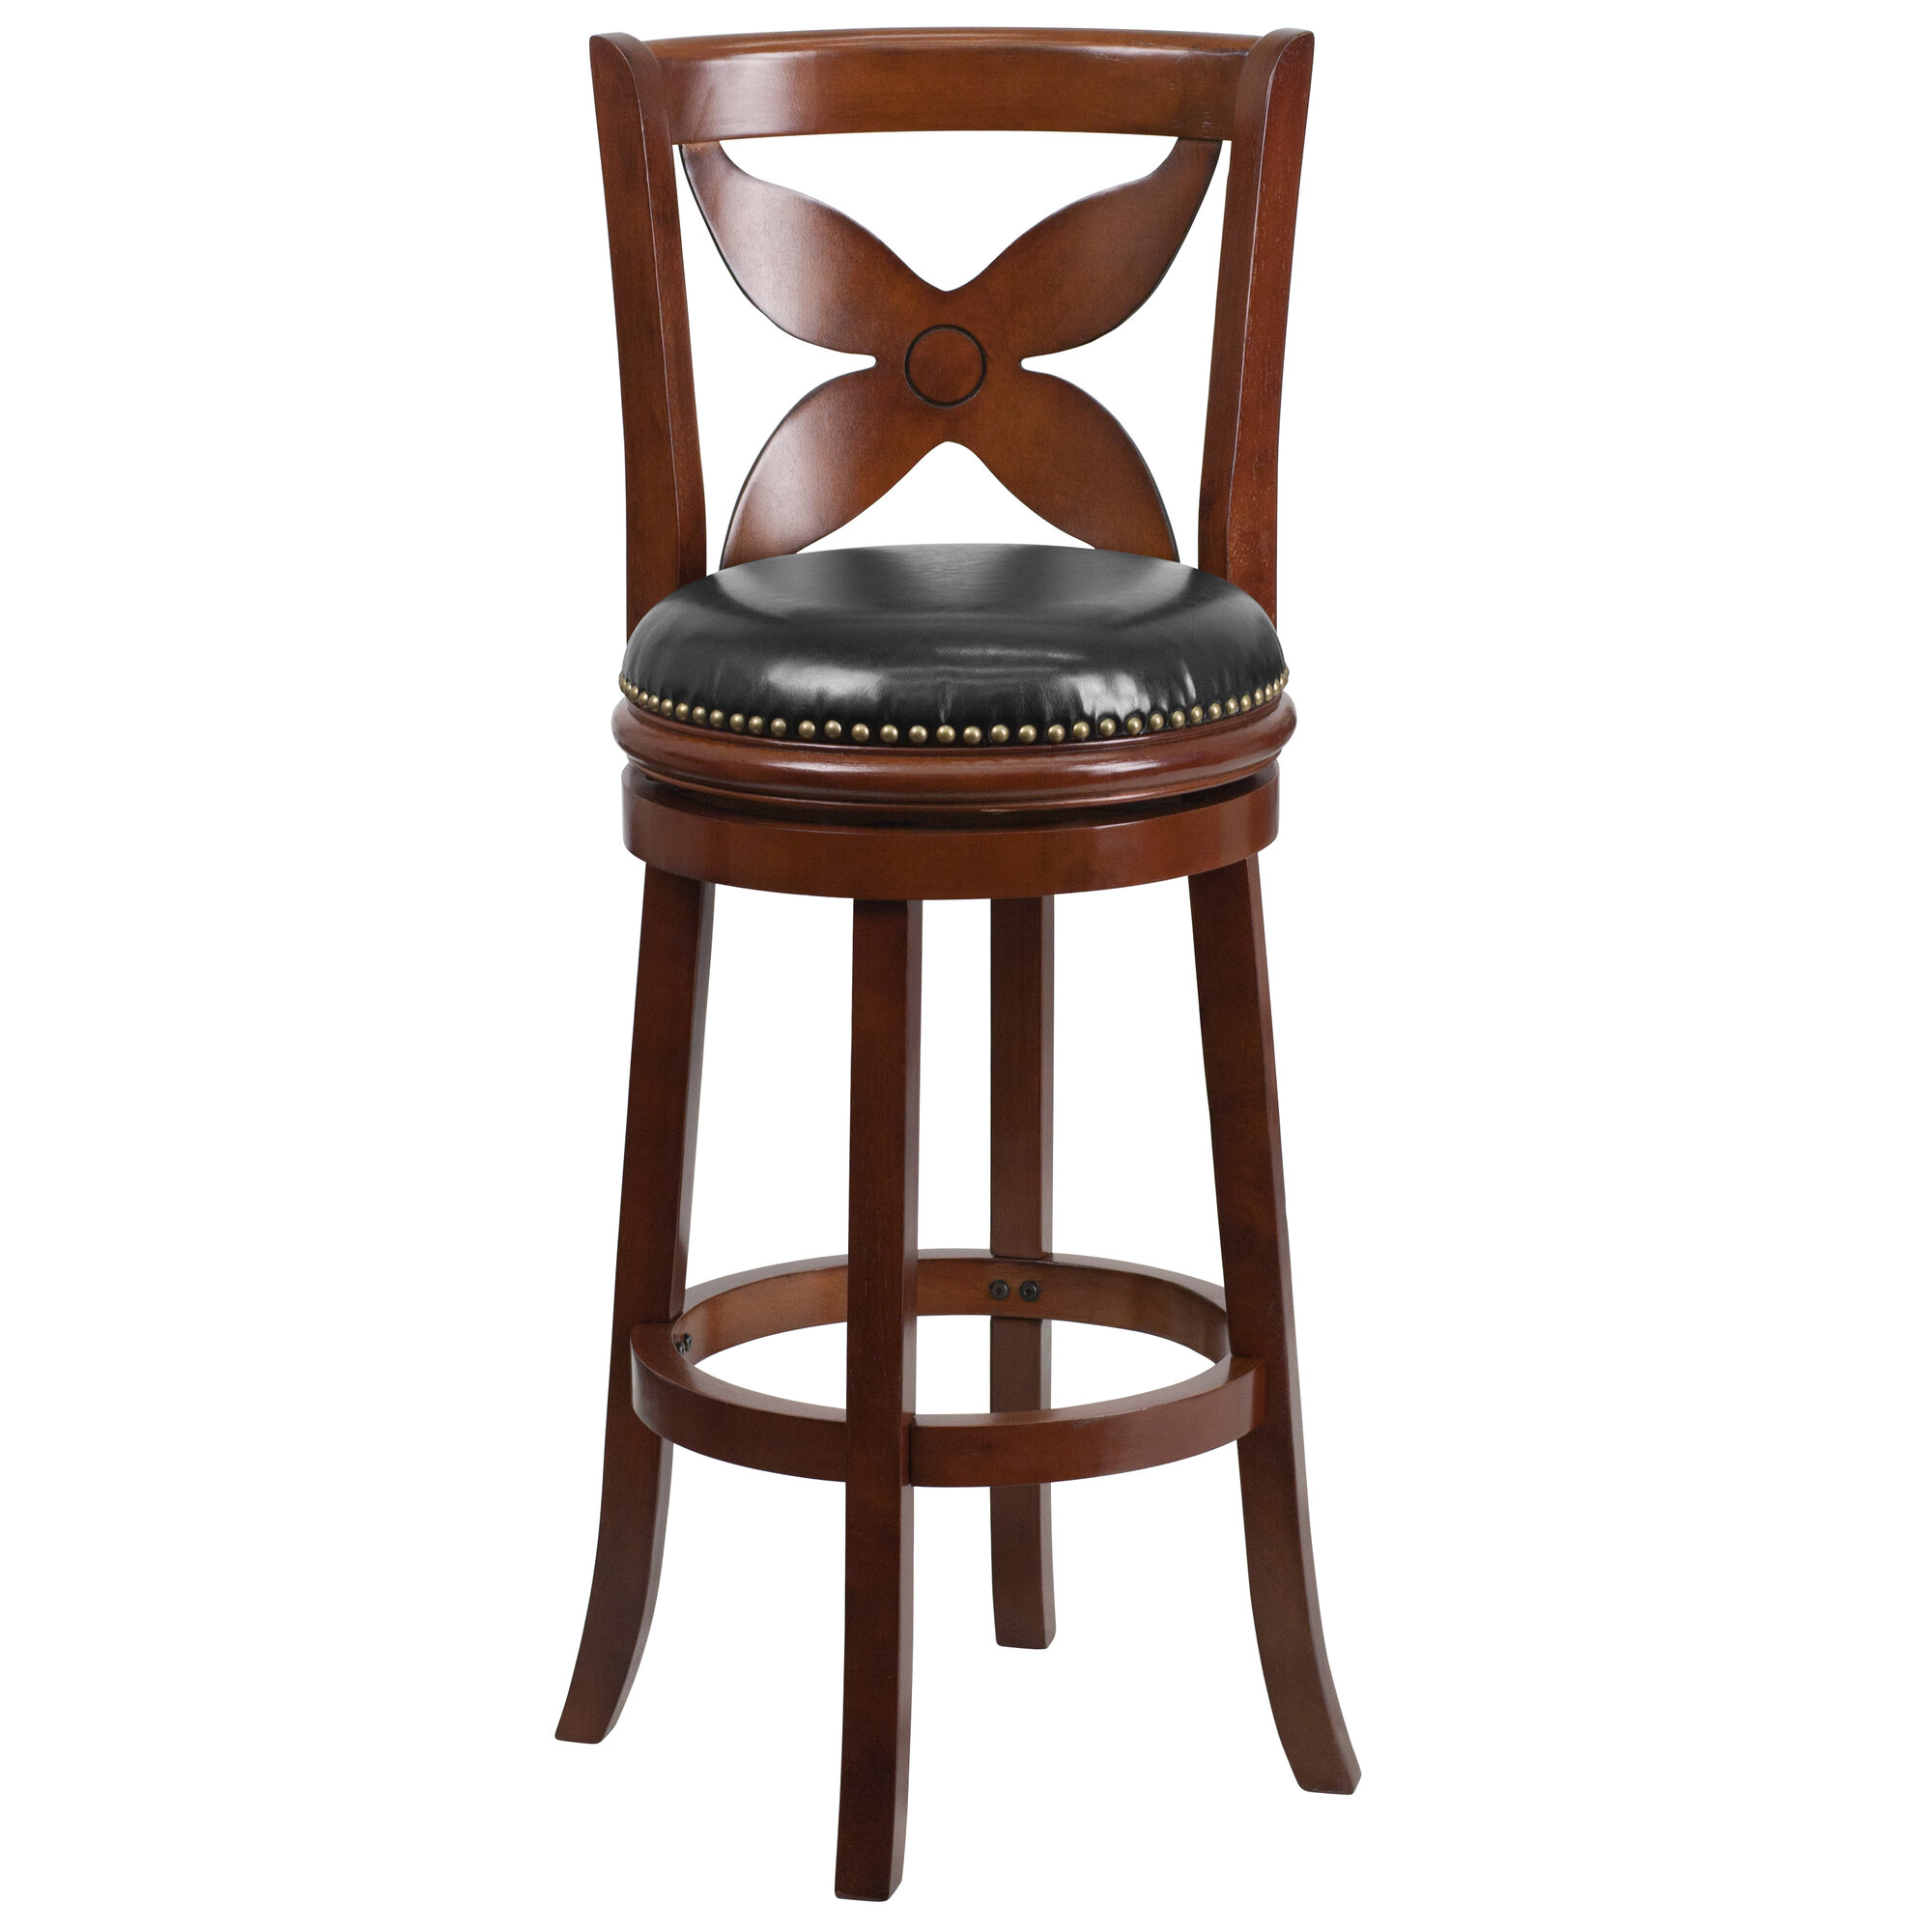 Very Impressive portraiture of  about Flash Furniture 29'' Wood Bar Stool with Leather Swivel Seat with #663826 color and 2000x2000 pixels